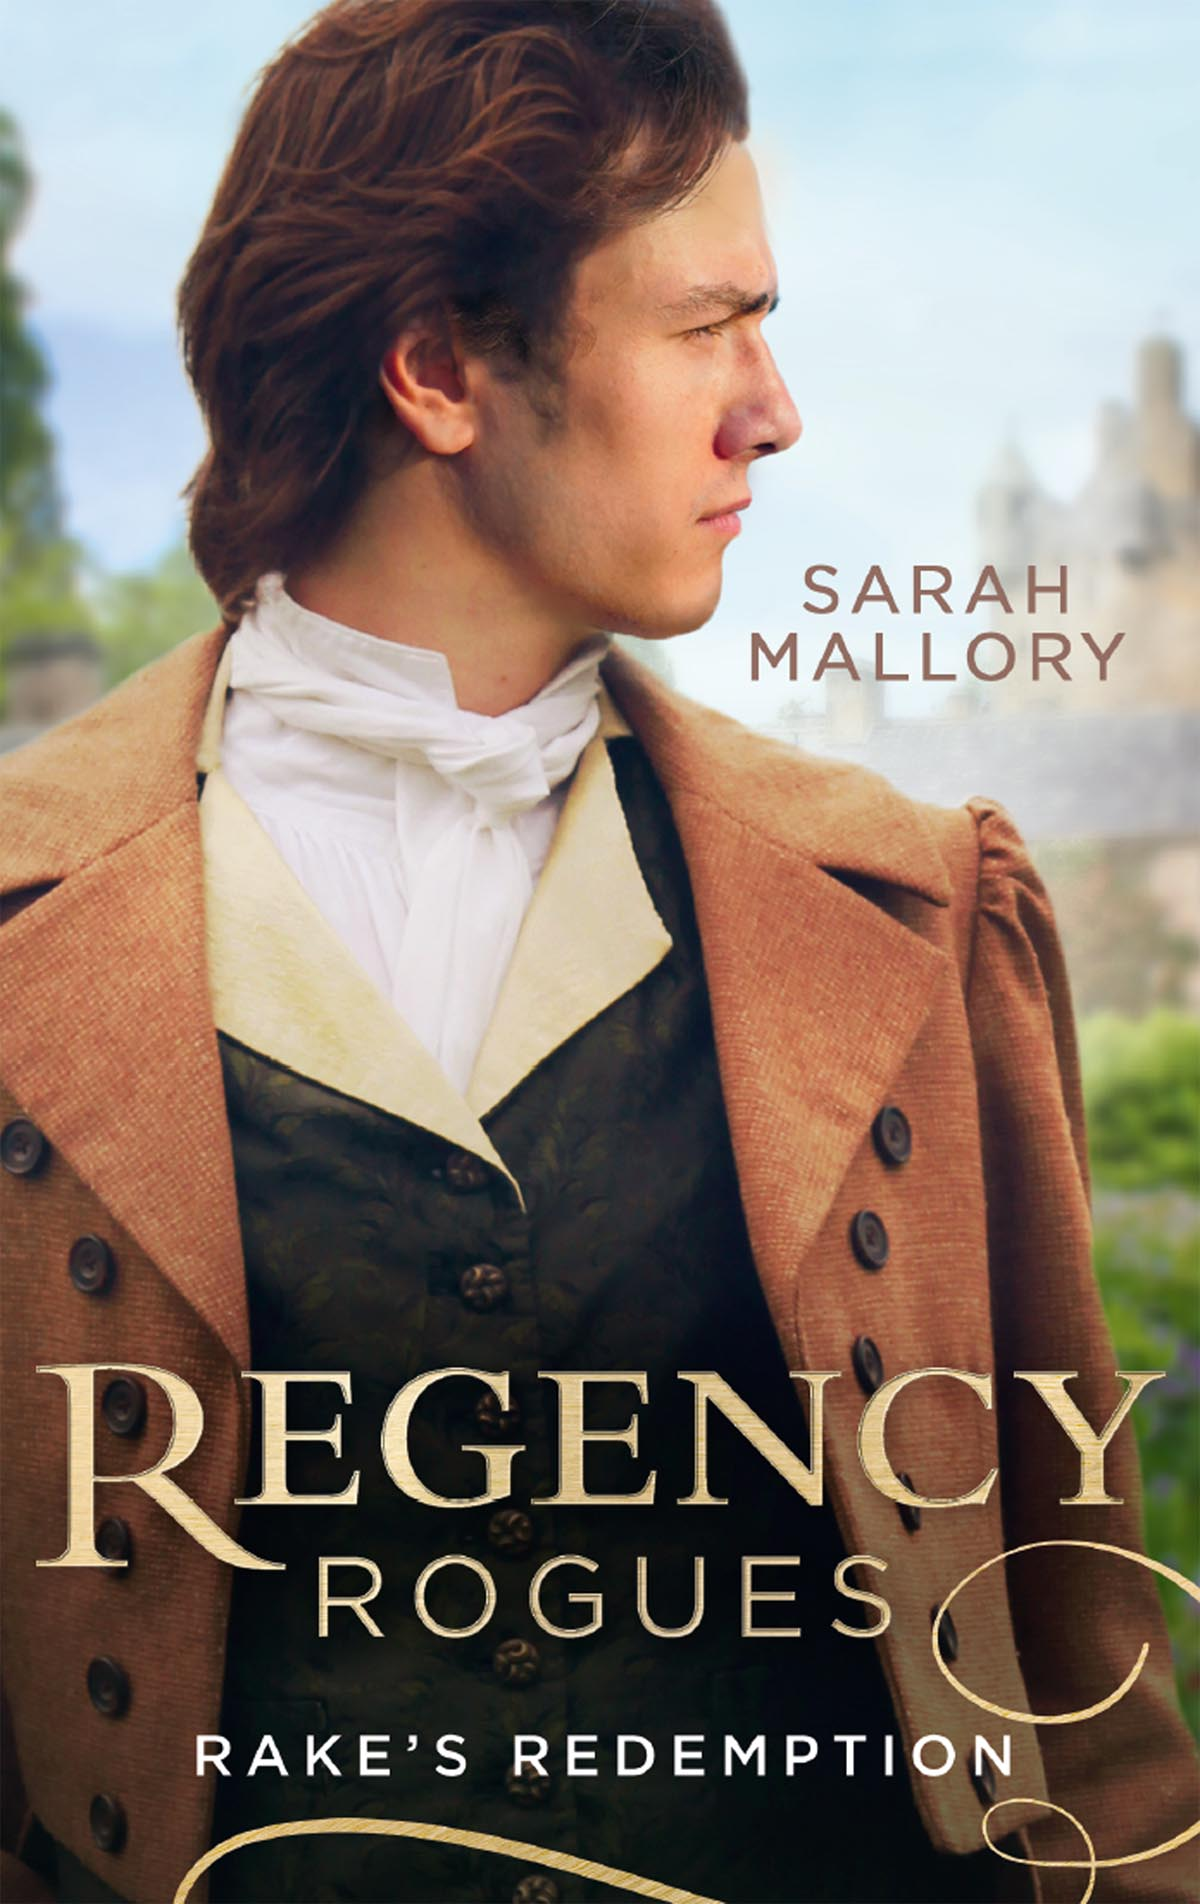 Regency Rogues: Rakes' Redemption: Return of the Runaway (The Infamous Arrandales) / The Outcast's Redemption (The Infamous Arrandales) фото